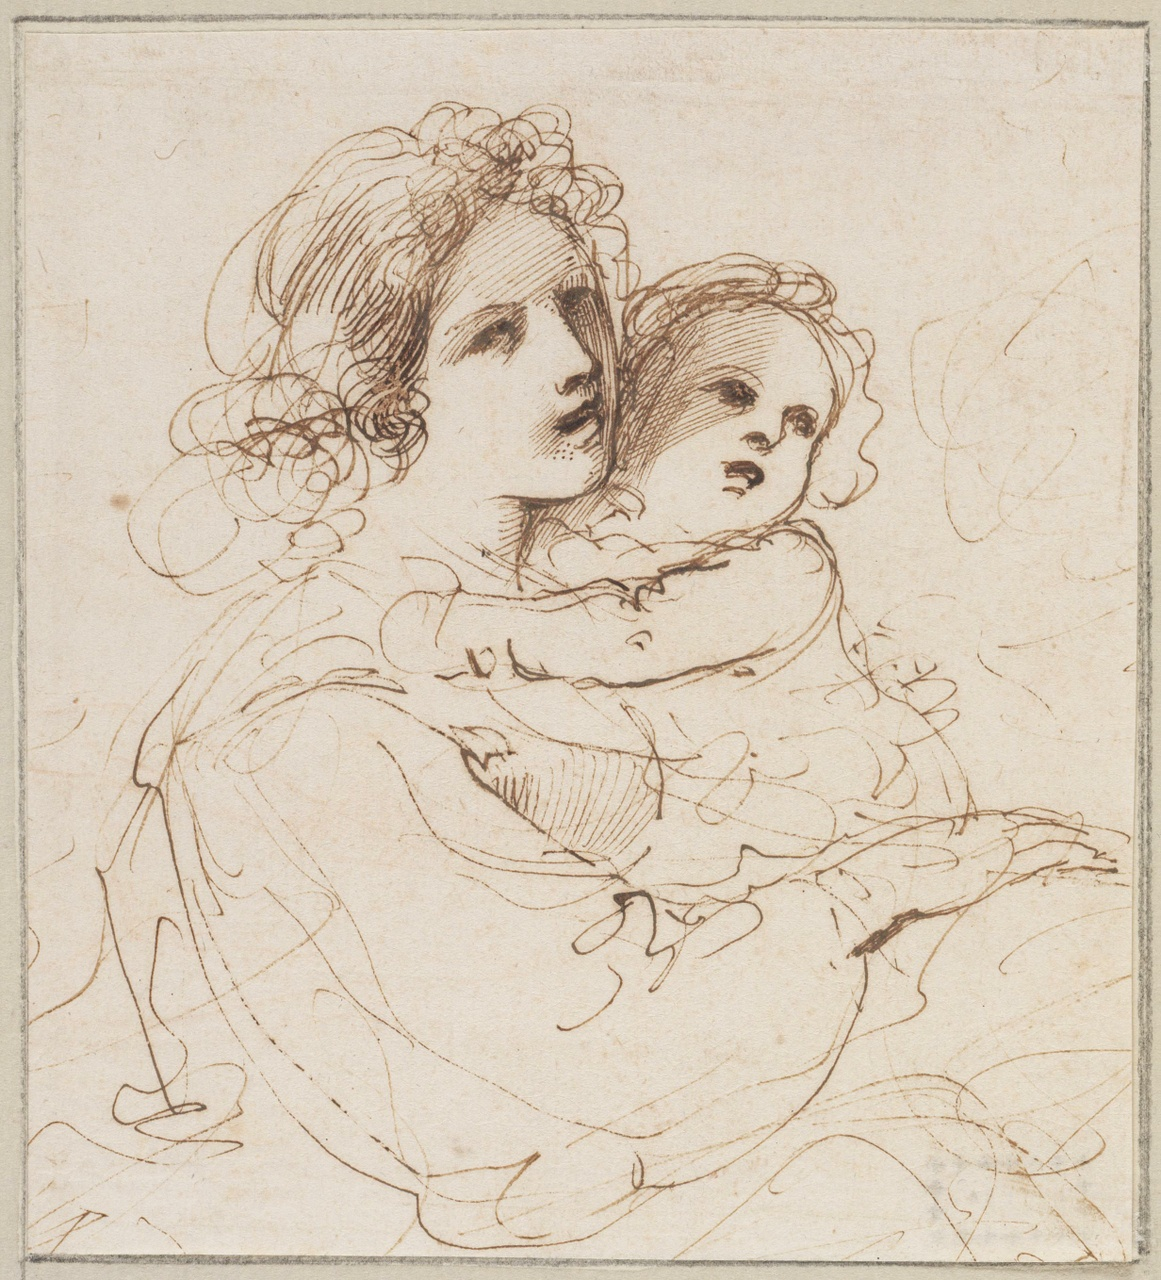 1161x1280 Spencer Alley More Guercino Drawings From Queen Christina's Albums